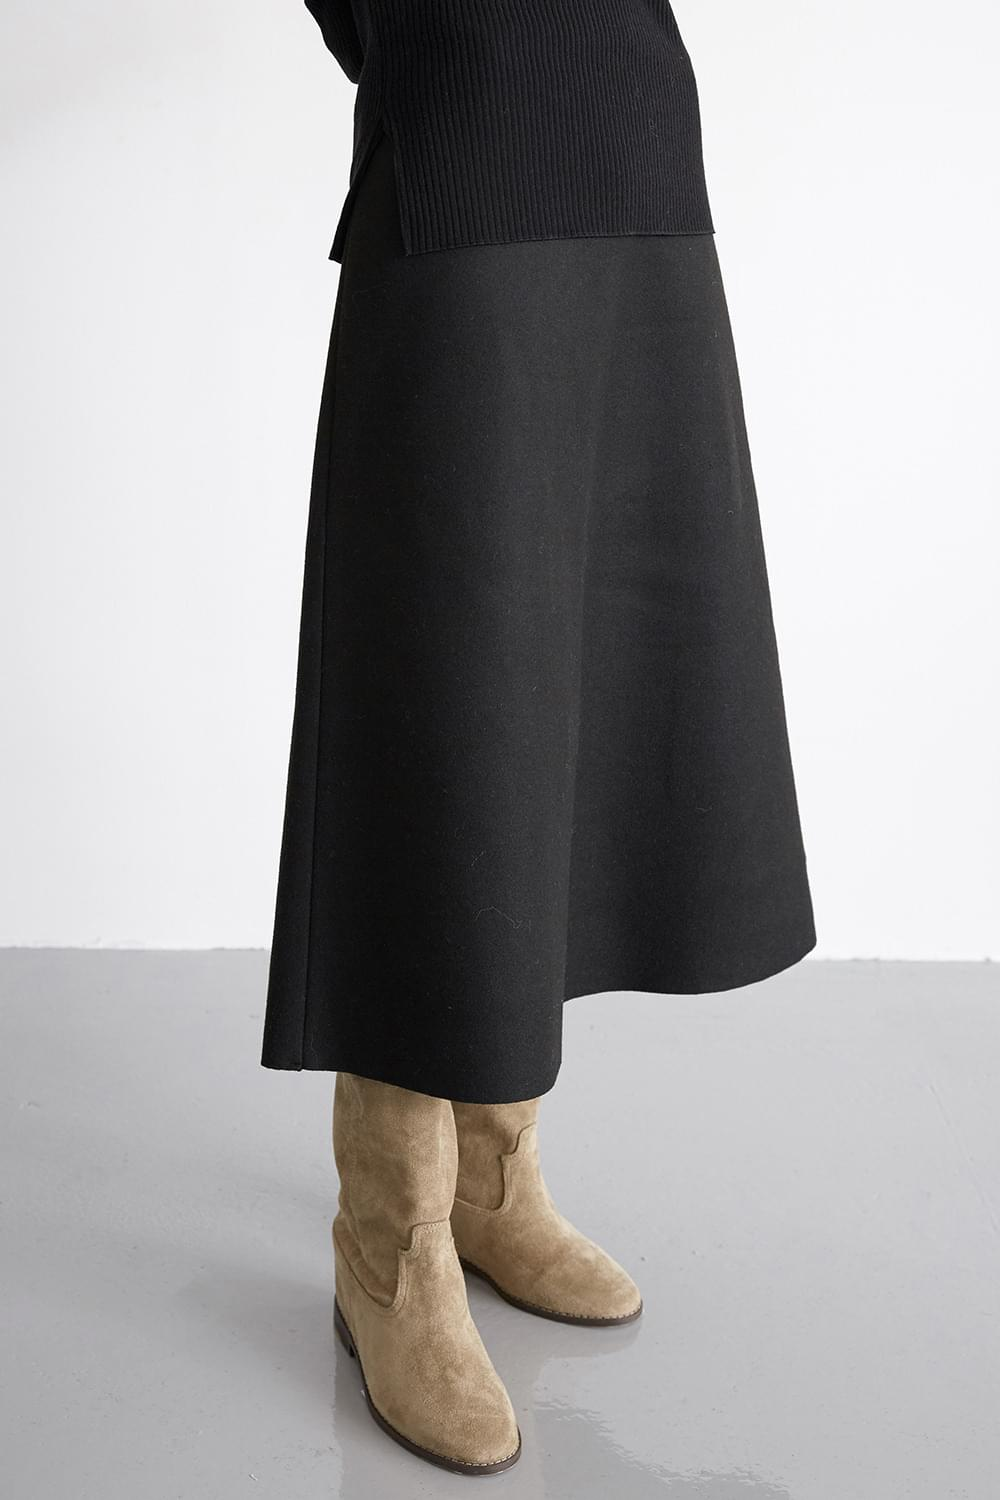 wool tension skirts (3colors)